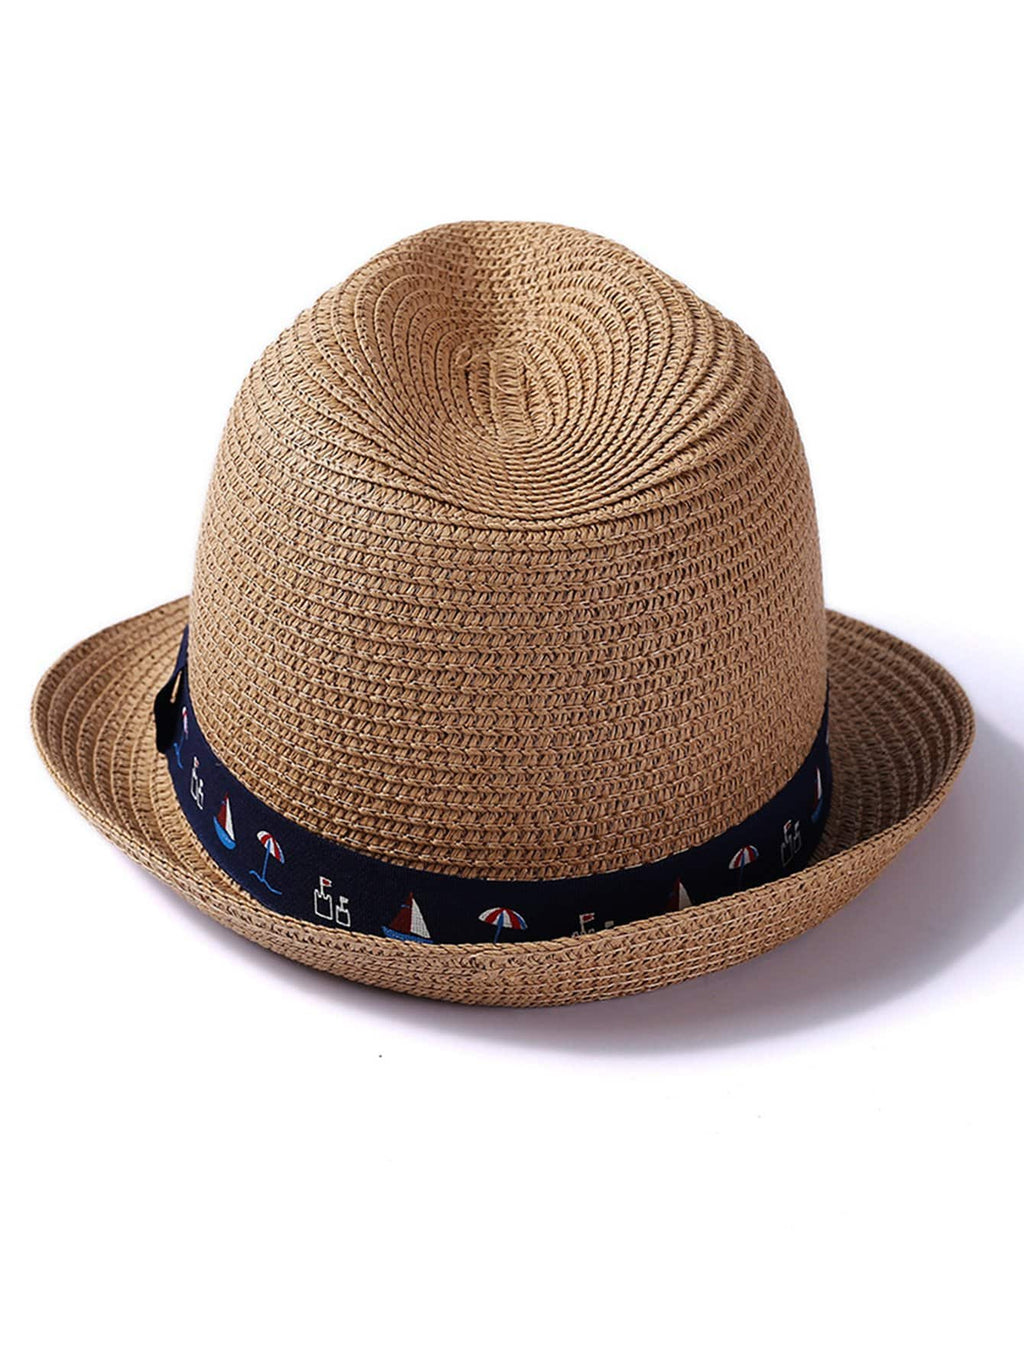 Kids Hats - Boys Mixed Print Band Straw Hat